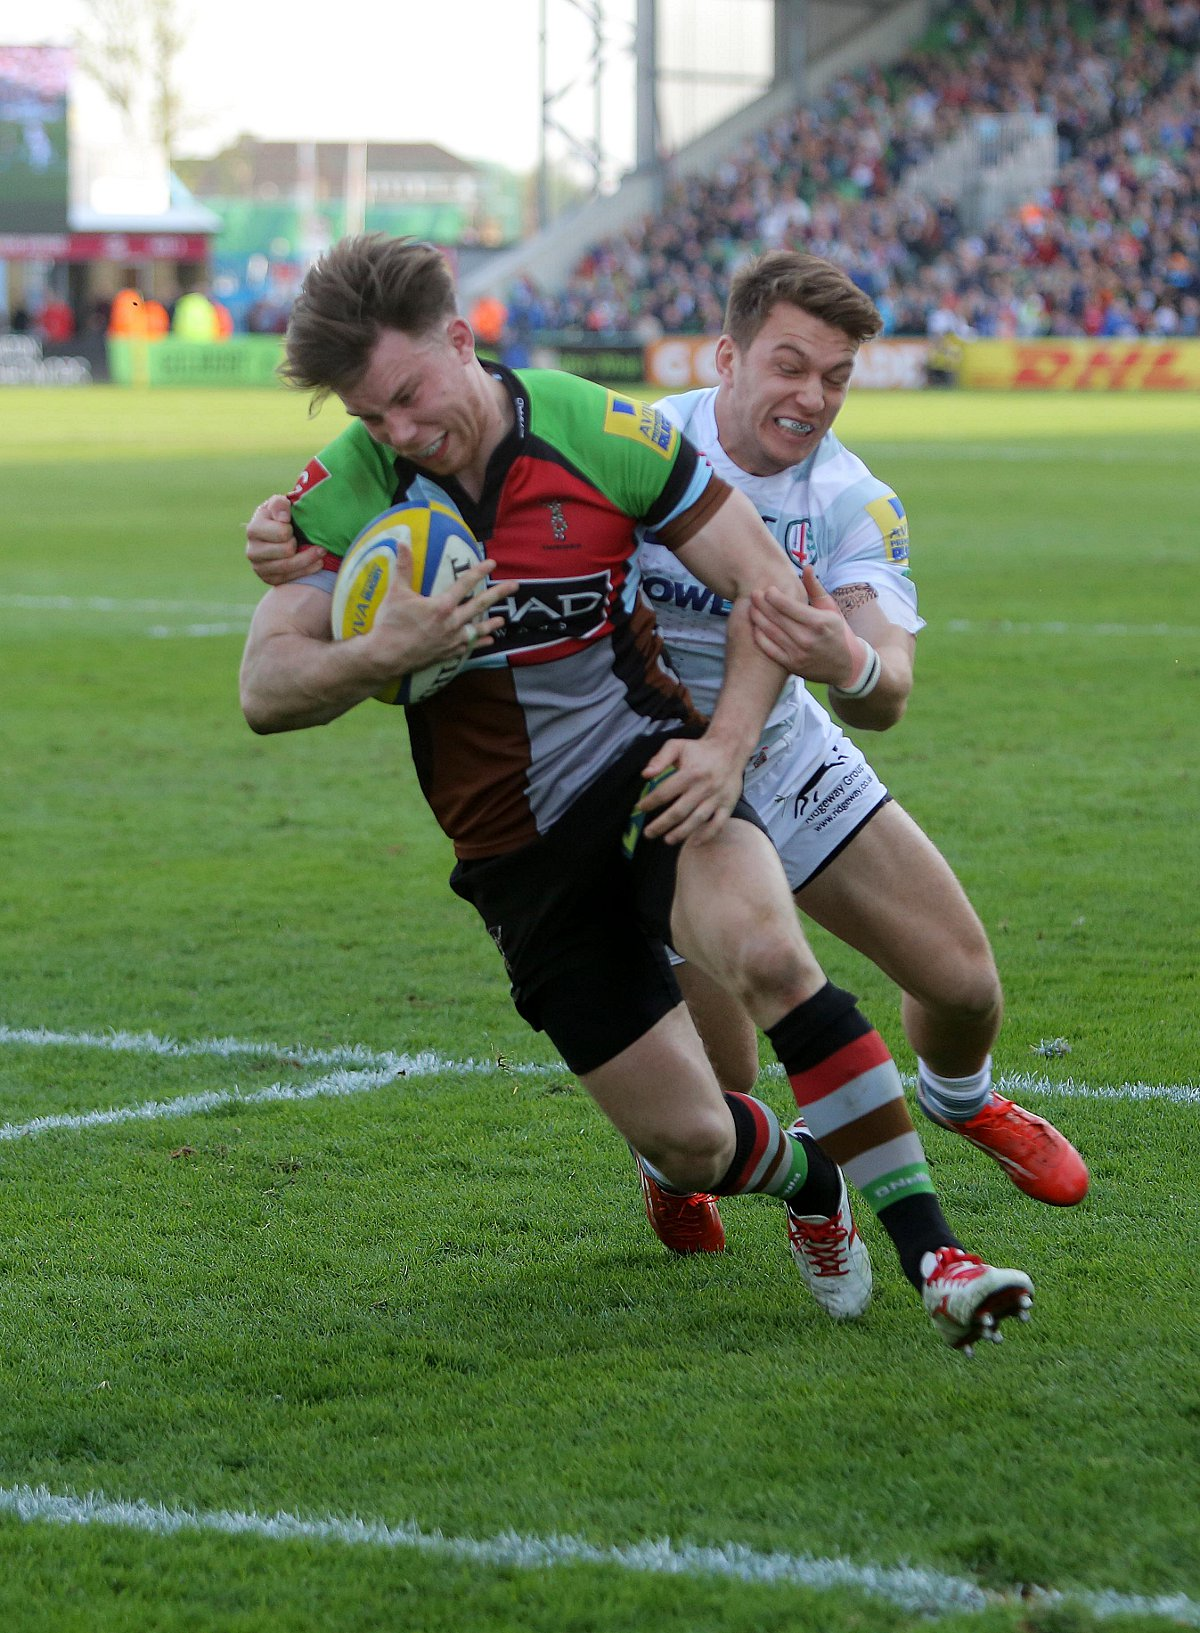 On his way: Quins winger Sam Smith could end the season as the Premiership's leading try scorer and be playing in the Championship next season